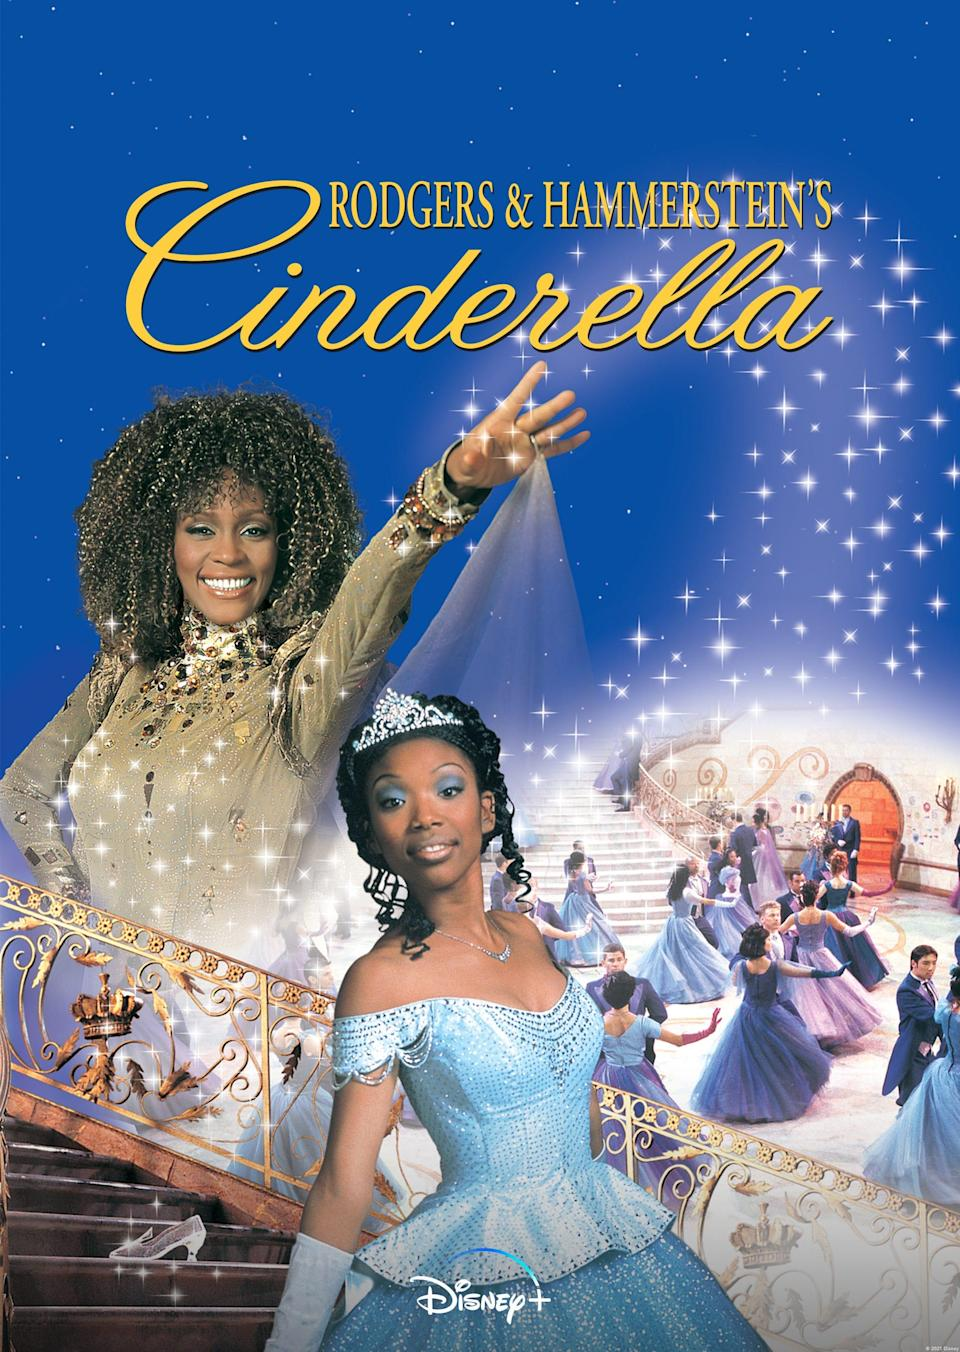 """Rogers and Hammerstein's Cinderella"" starring Brandy Norwood and Whitney Houston is streaming on Disney+ Feb. 12."